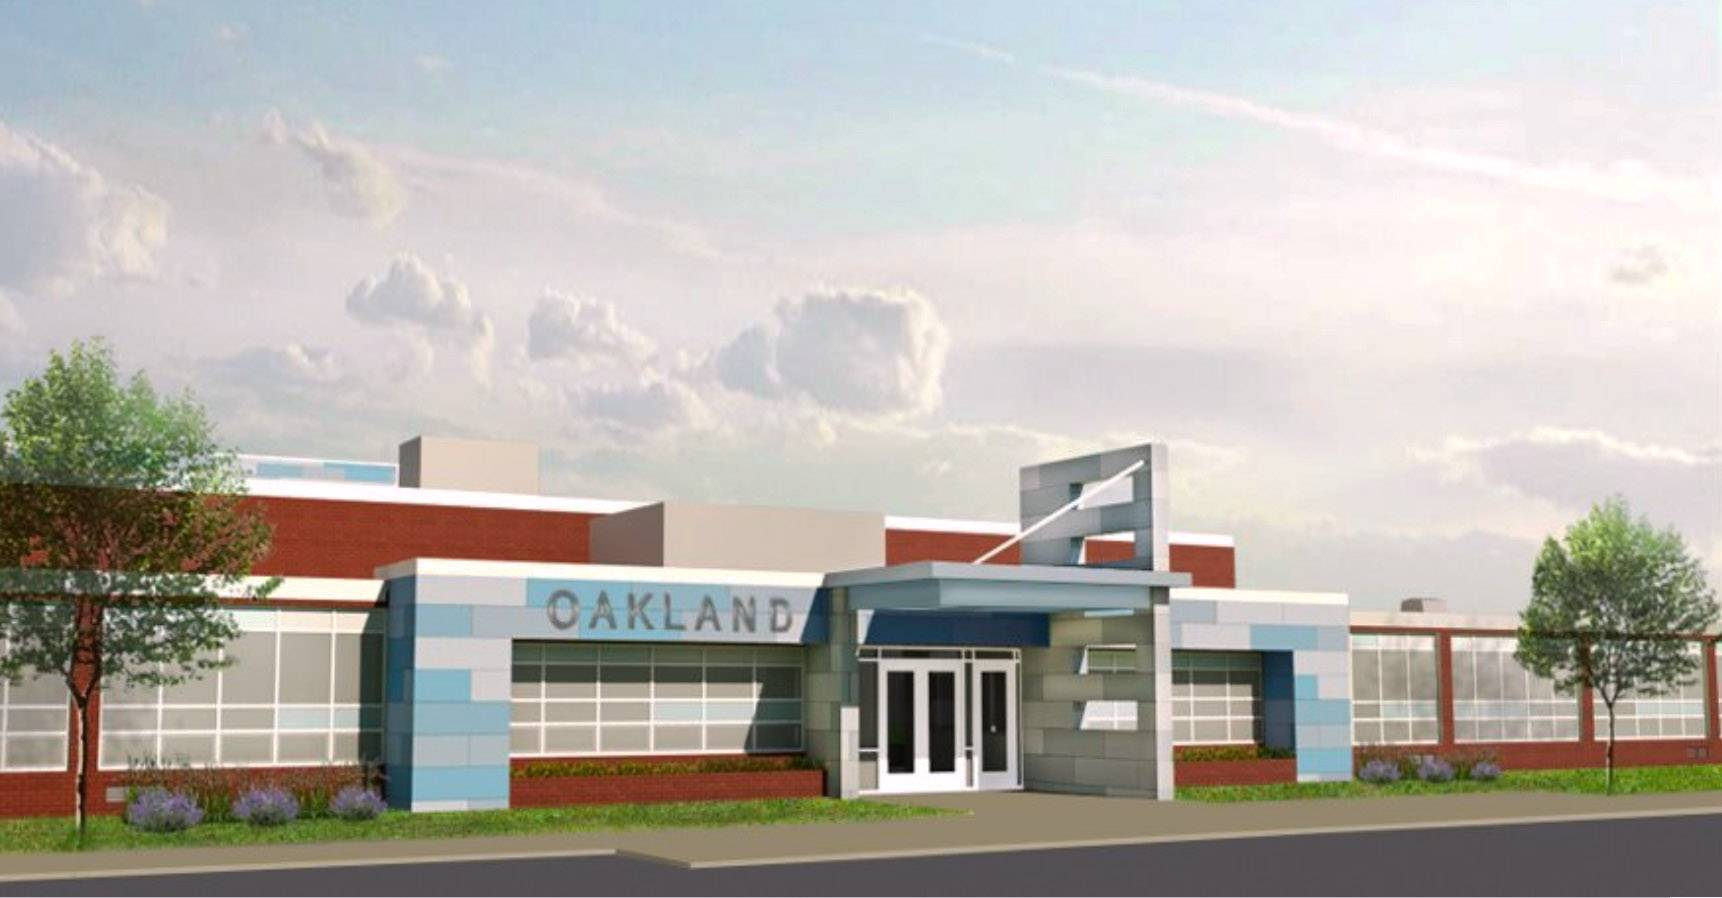 A rendering of the proposed look of Oakland Elementary School in Antioch Elementary District 34 after pending improvements.